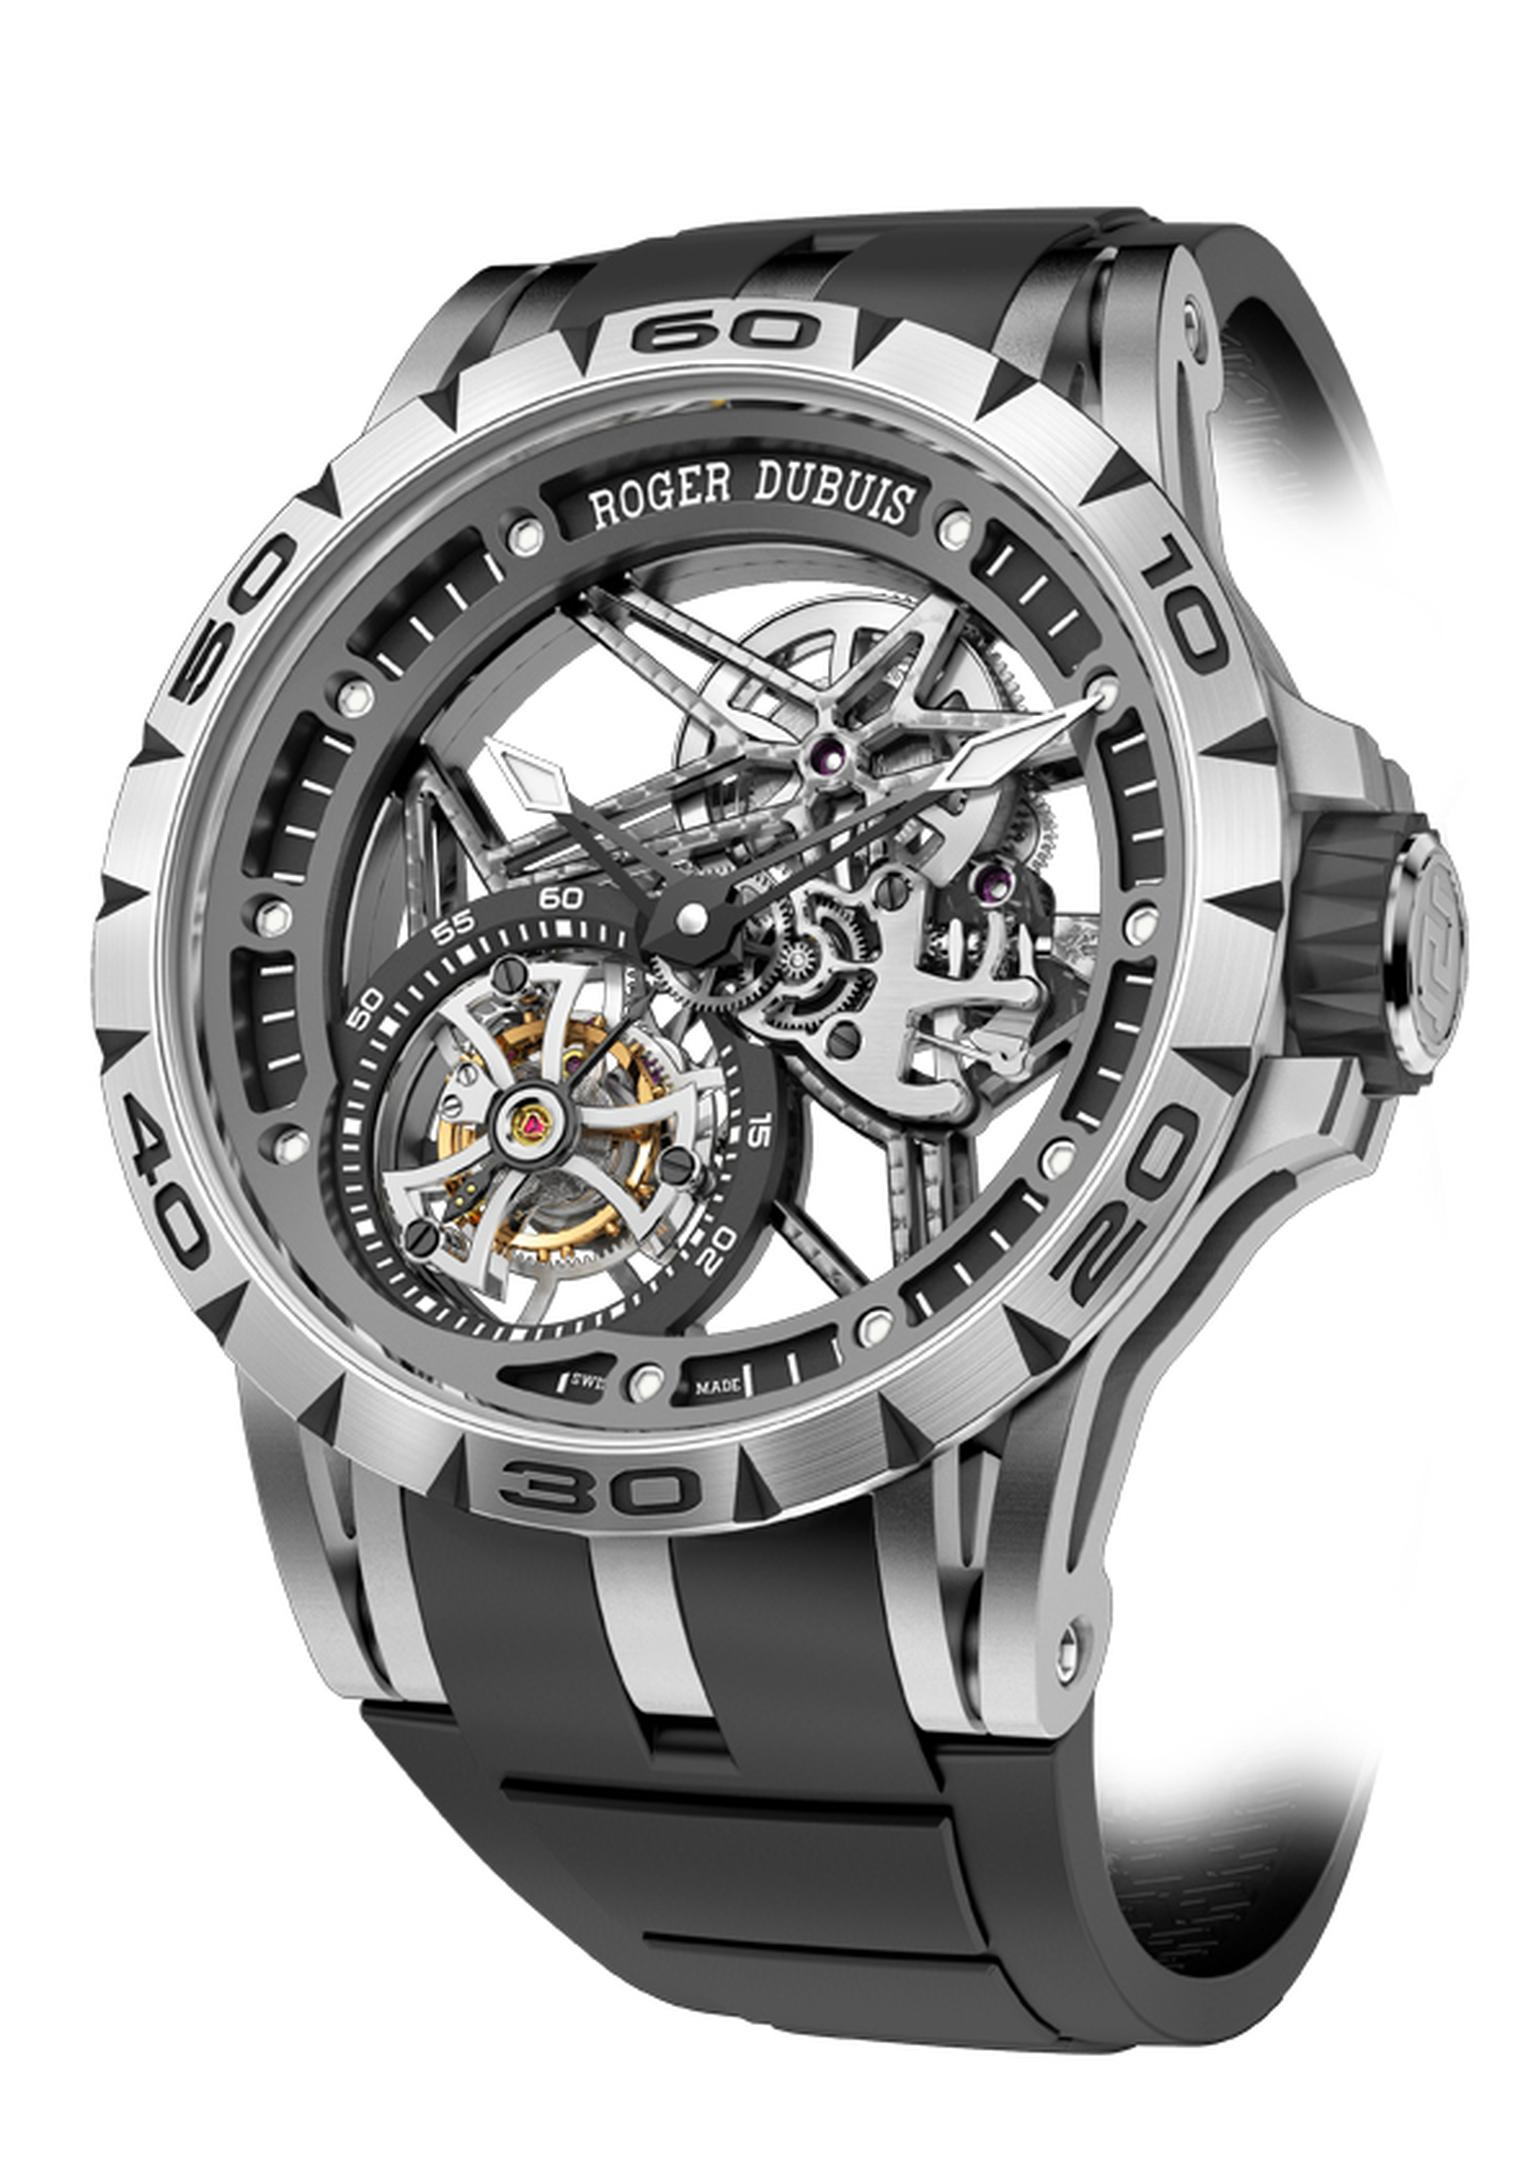 Roger Dubuis Excalibur Spider Skeleton Flying Tourbillon is housed in a large 45mm titanium case, chosen because of its lightweight properties, and features a hand-wound movement to keep the flying tourbillon spinning and the hours, minutes and seconds ti